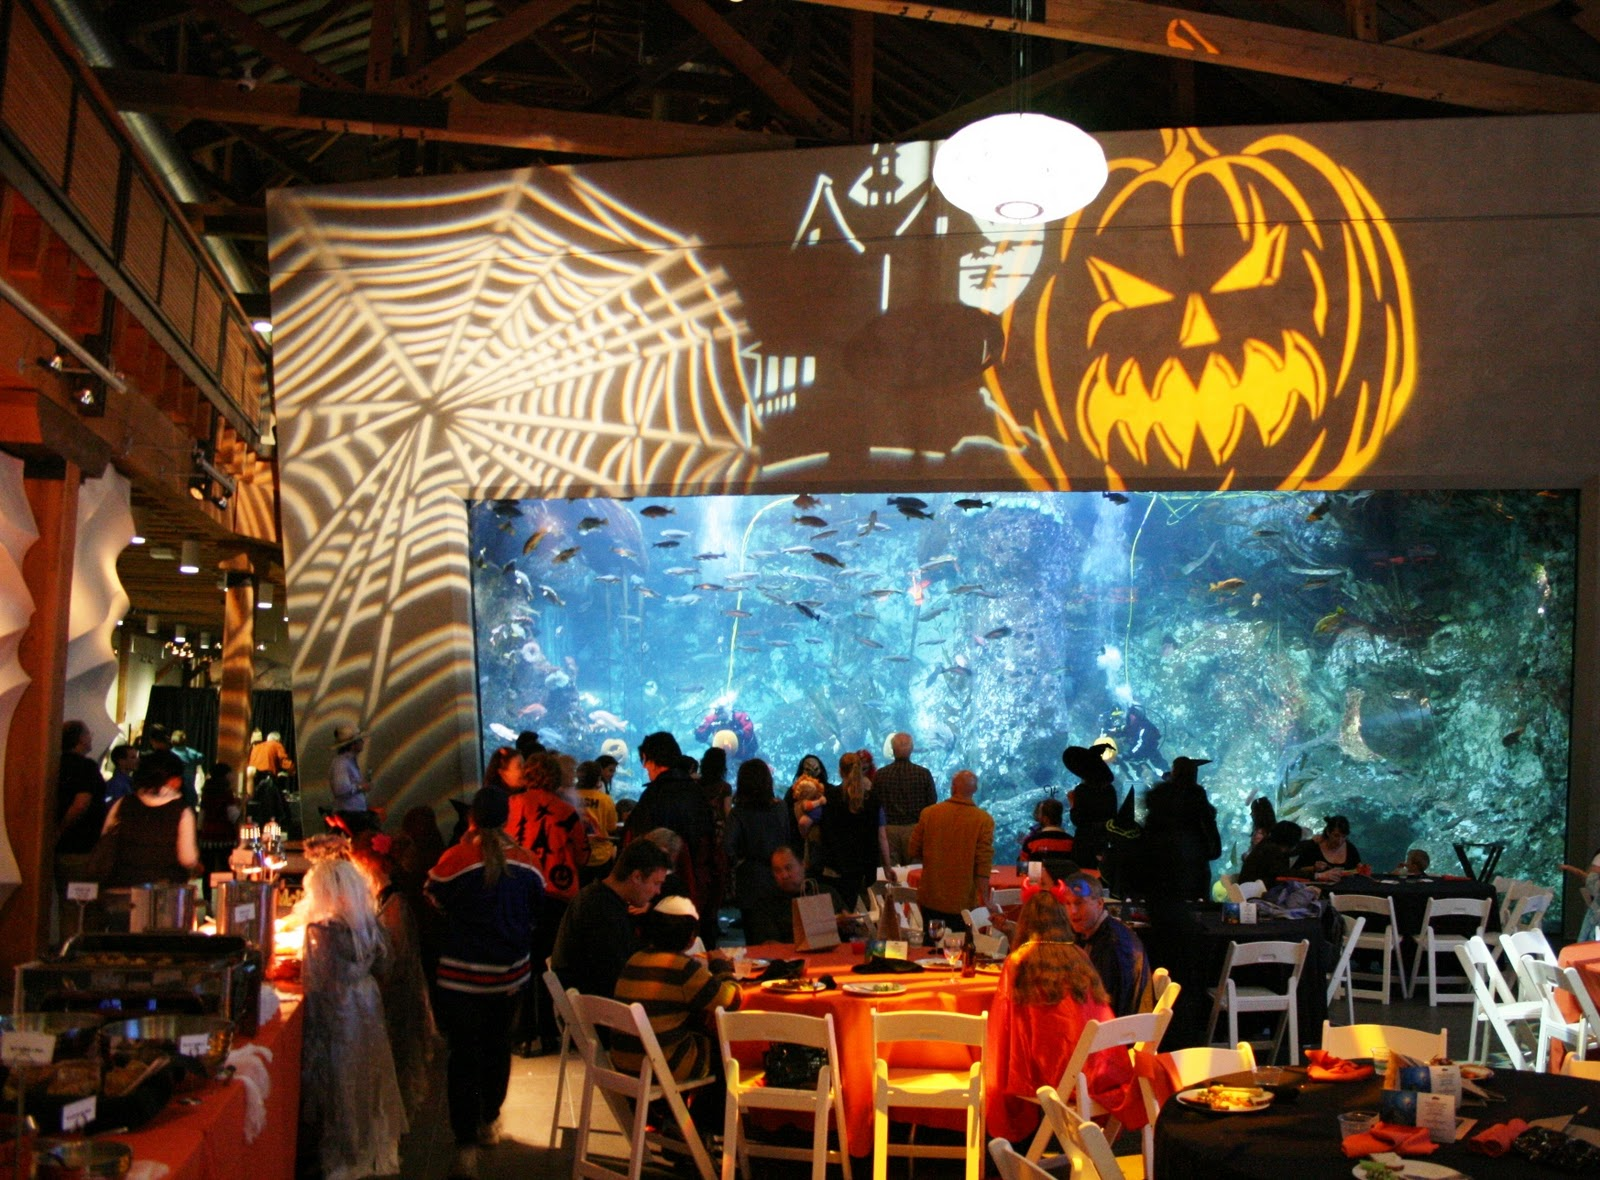 seattle aquarium at night: happy halloween!